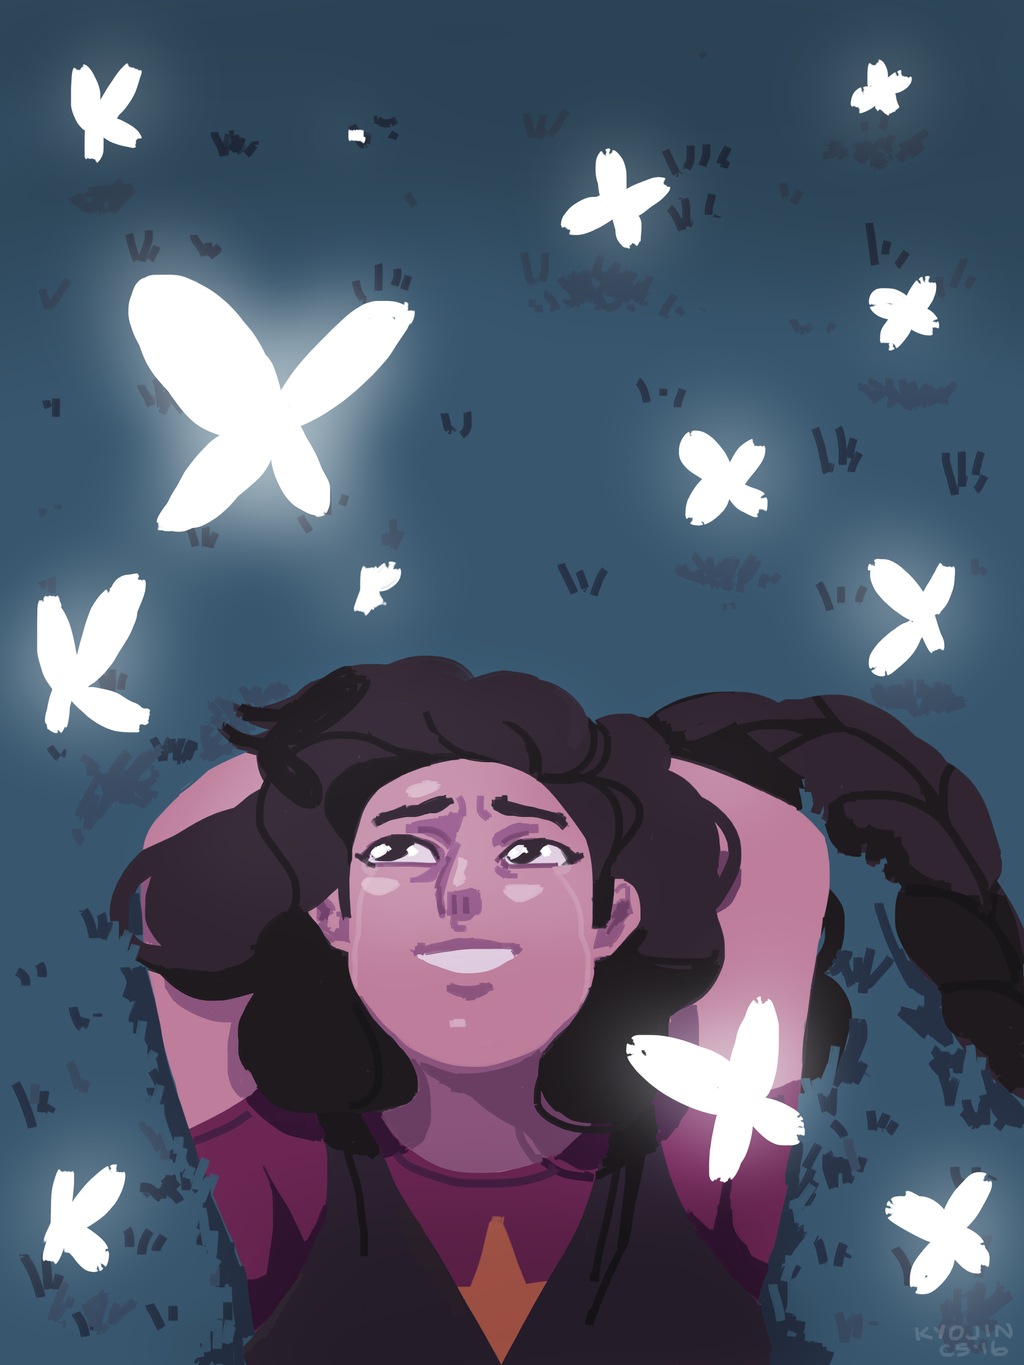 Obligatory Mindful Education fanart because I love Stevonnie and this episode was so powerful